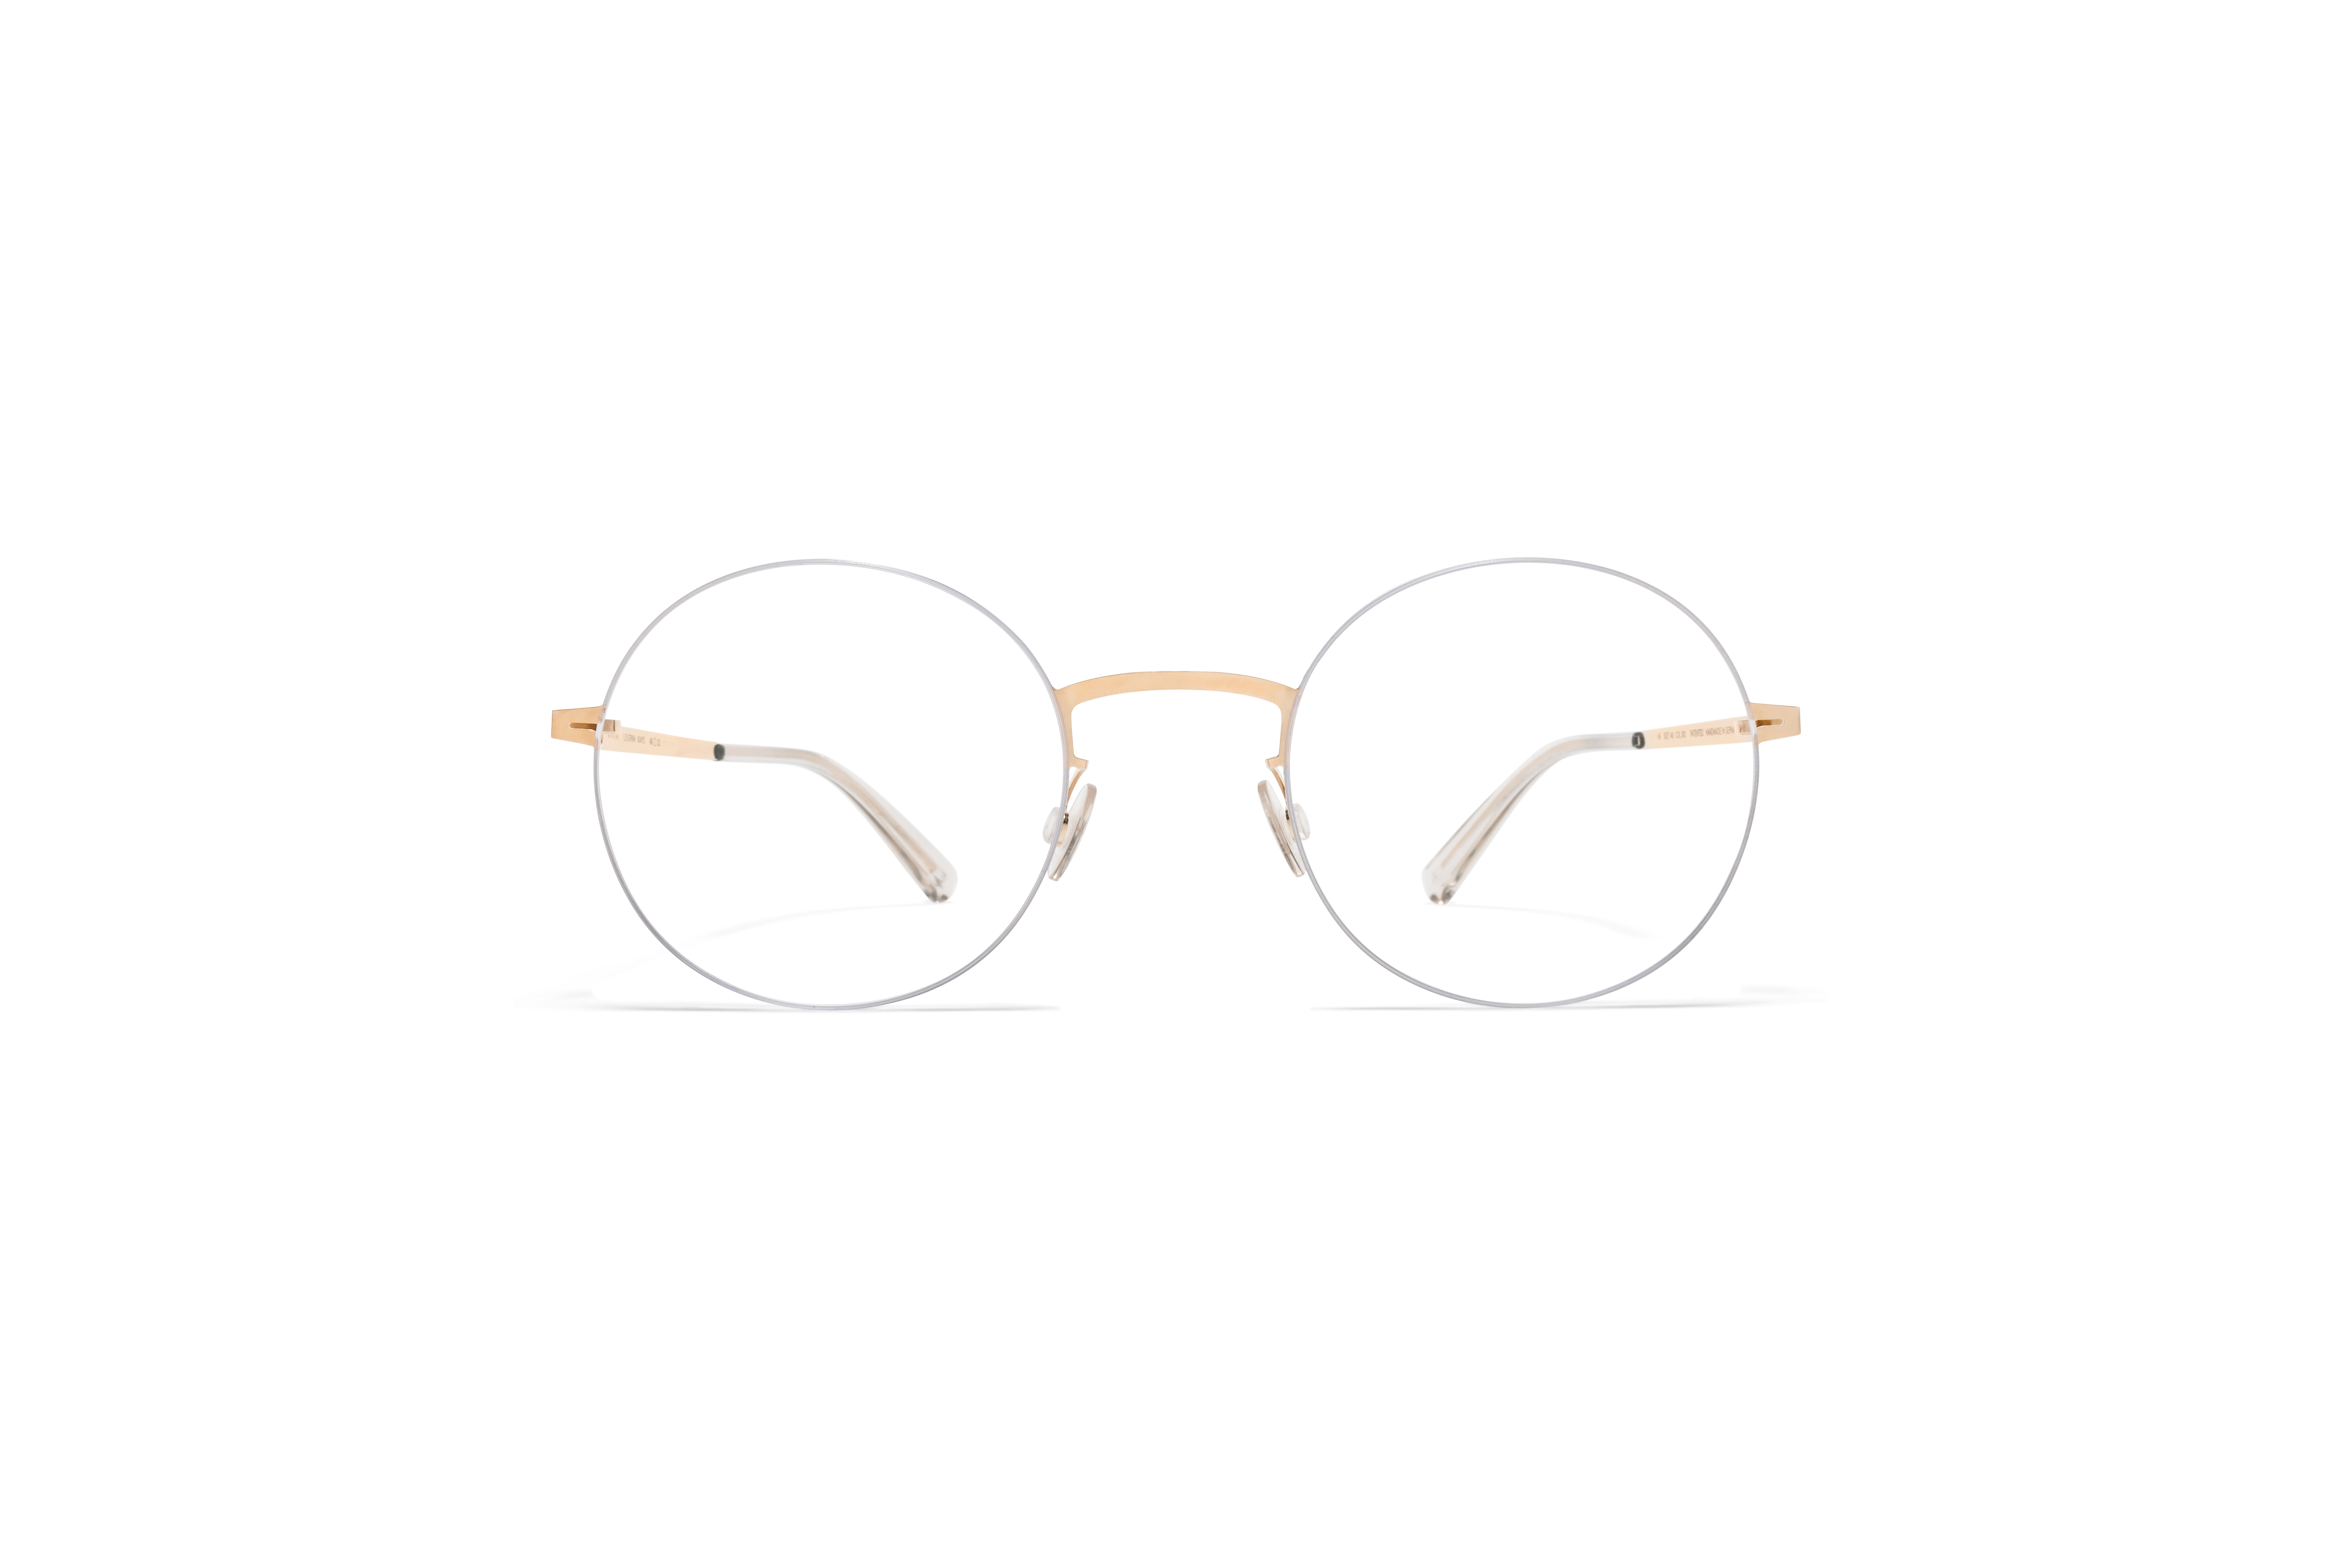 MYKITA Less Rim Rx Kayo Silver Champagne Gold Clear